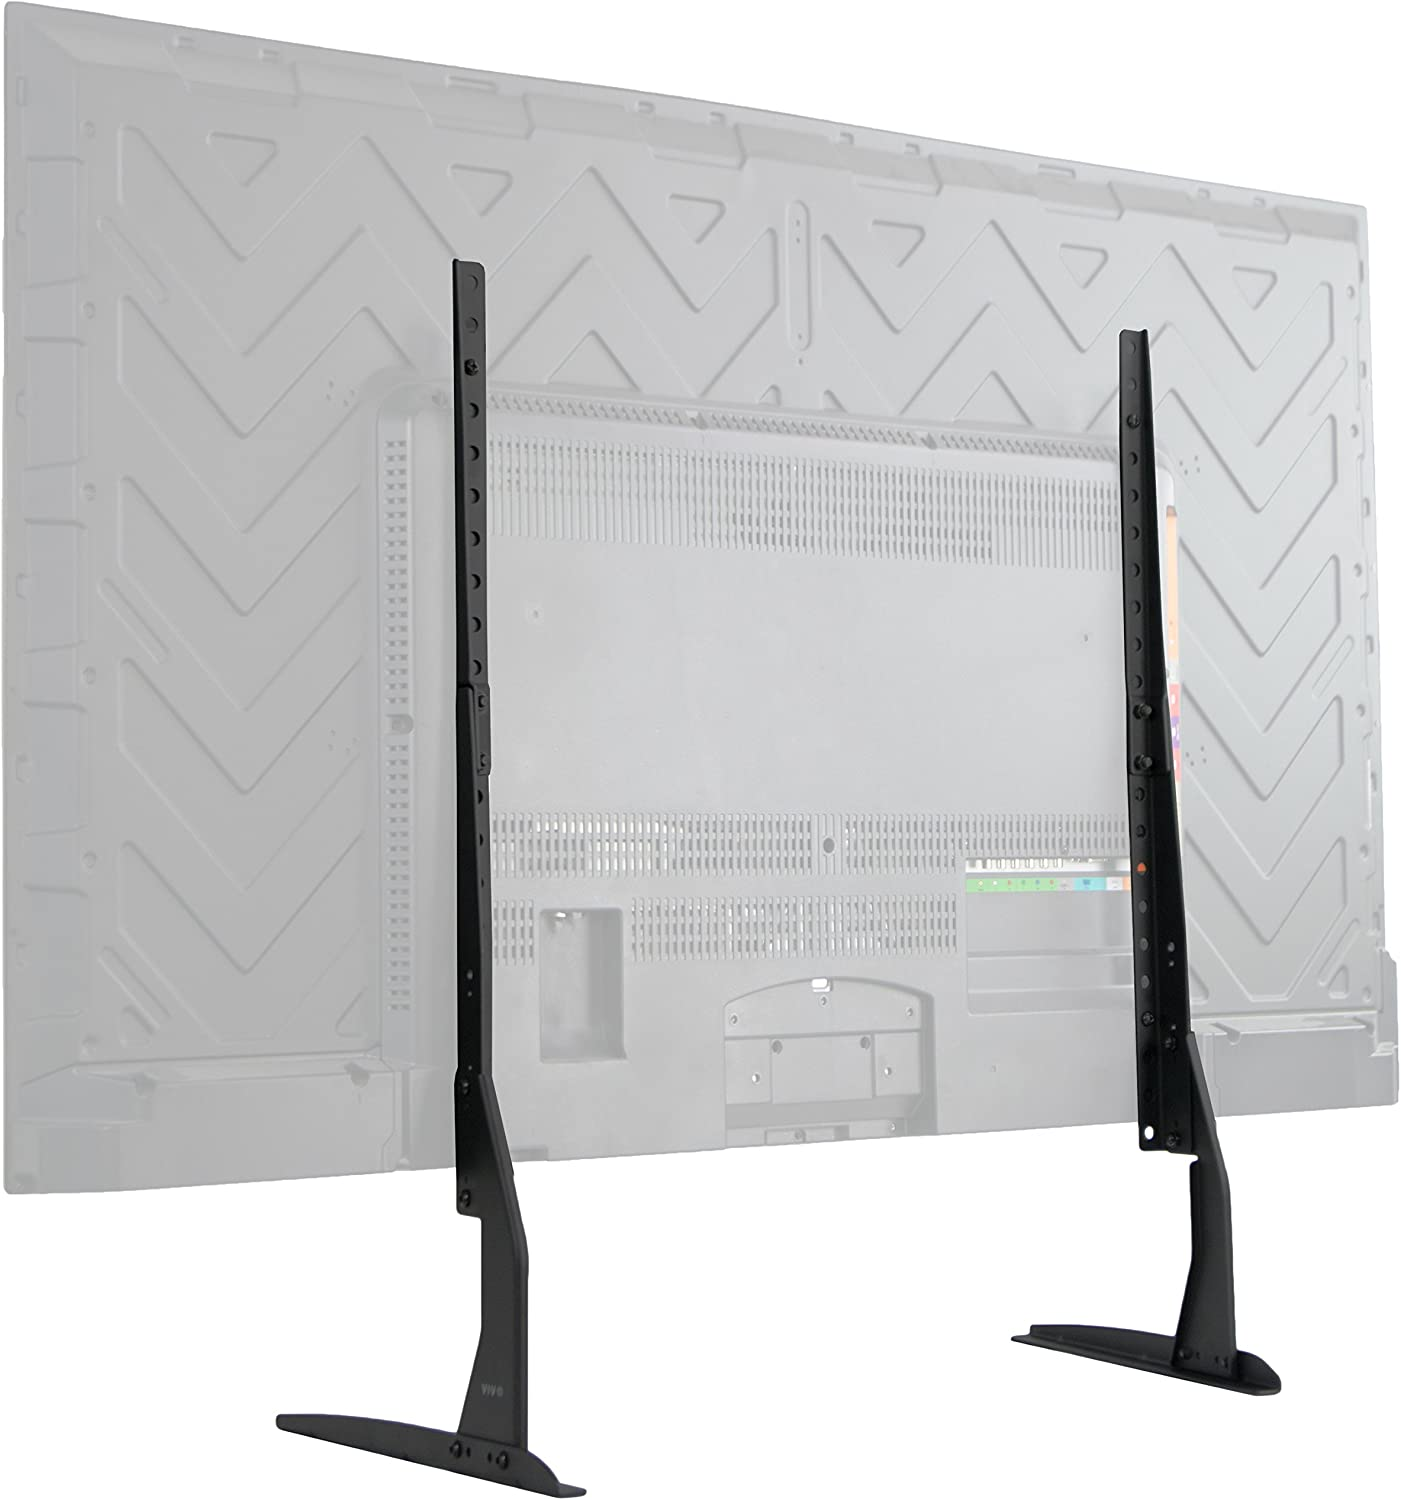 VIVO Universal Tabletop TV Stand for 22 to 65 inch LCD Flat Screens | VESA Mount with Hardware Included: Home & Kitchen